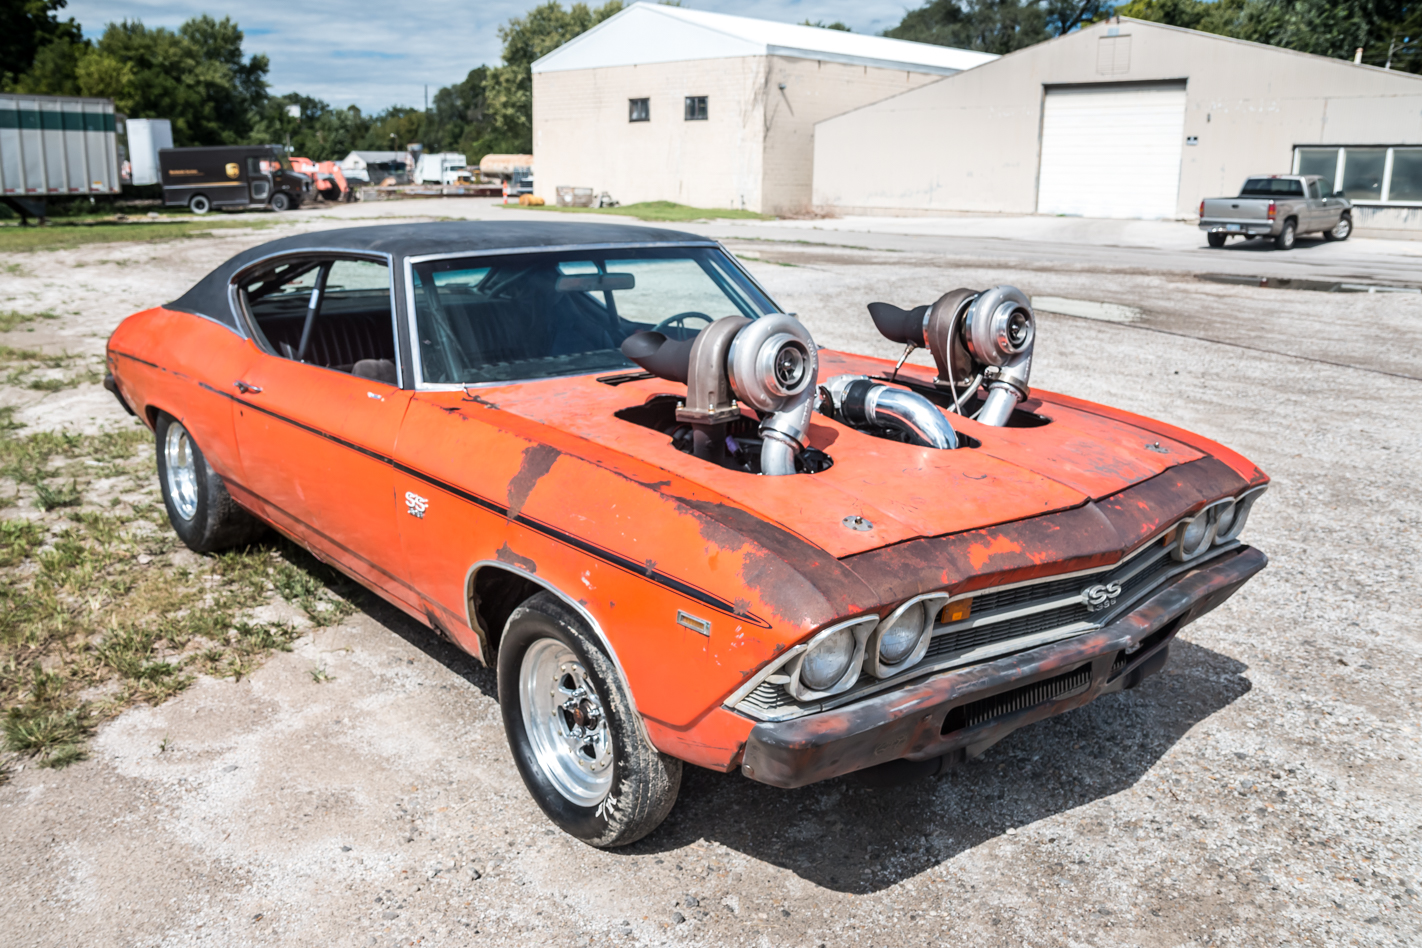 Old Chevelle with massive turbo system that was brought up from Australia. Photo: streetmachine